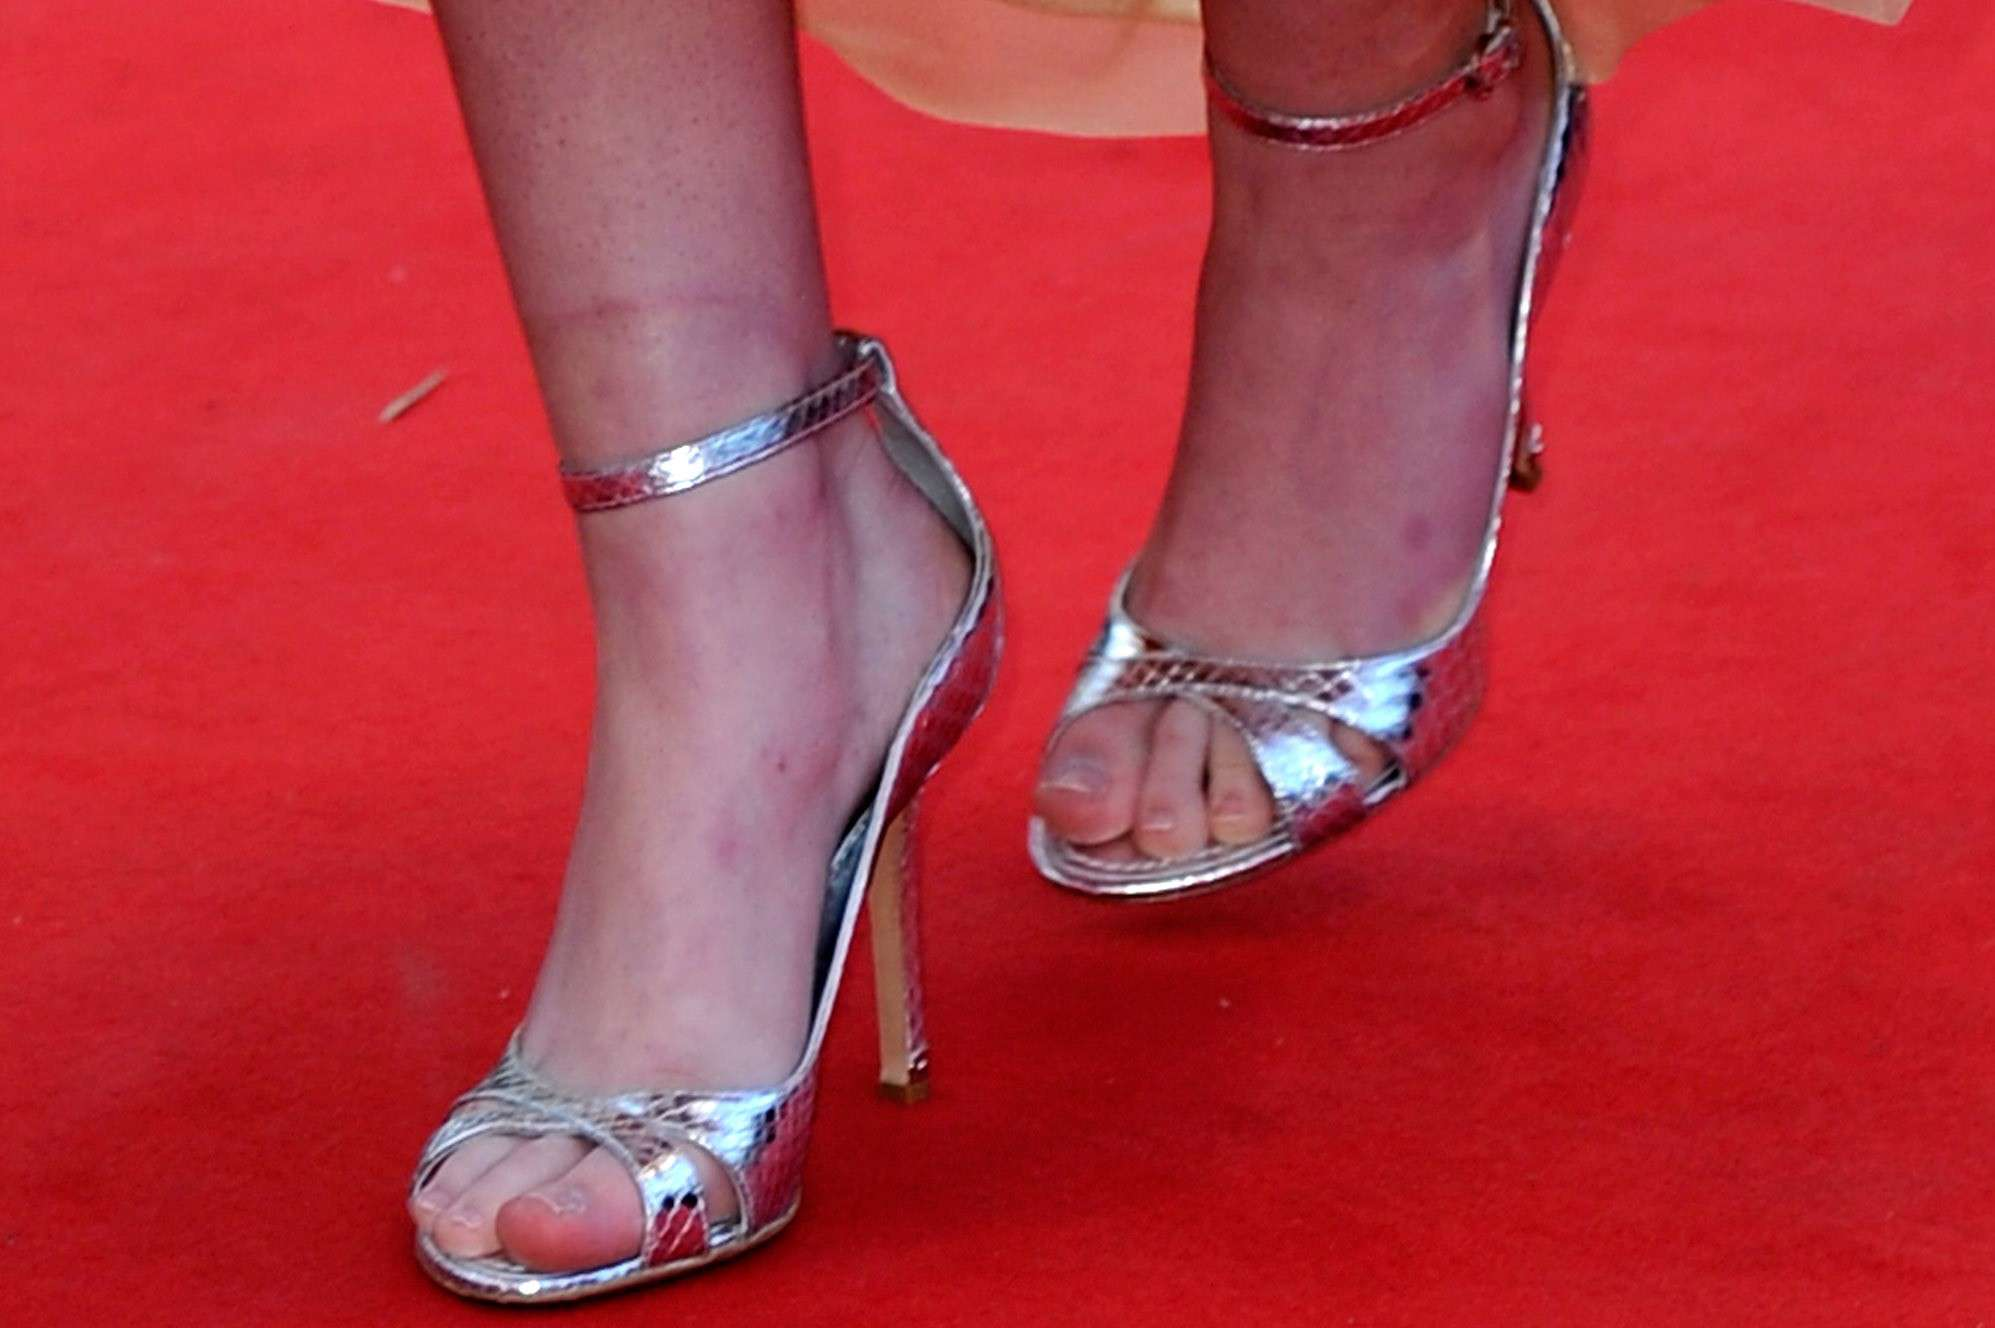 Woman wearing silver high heeled sandals